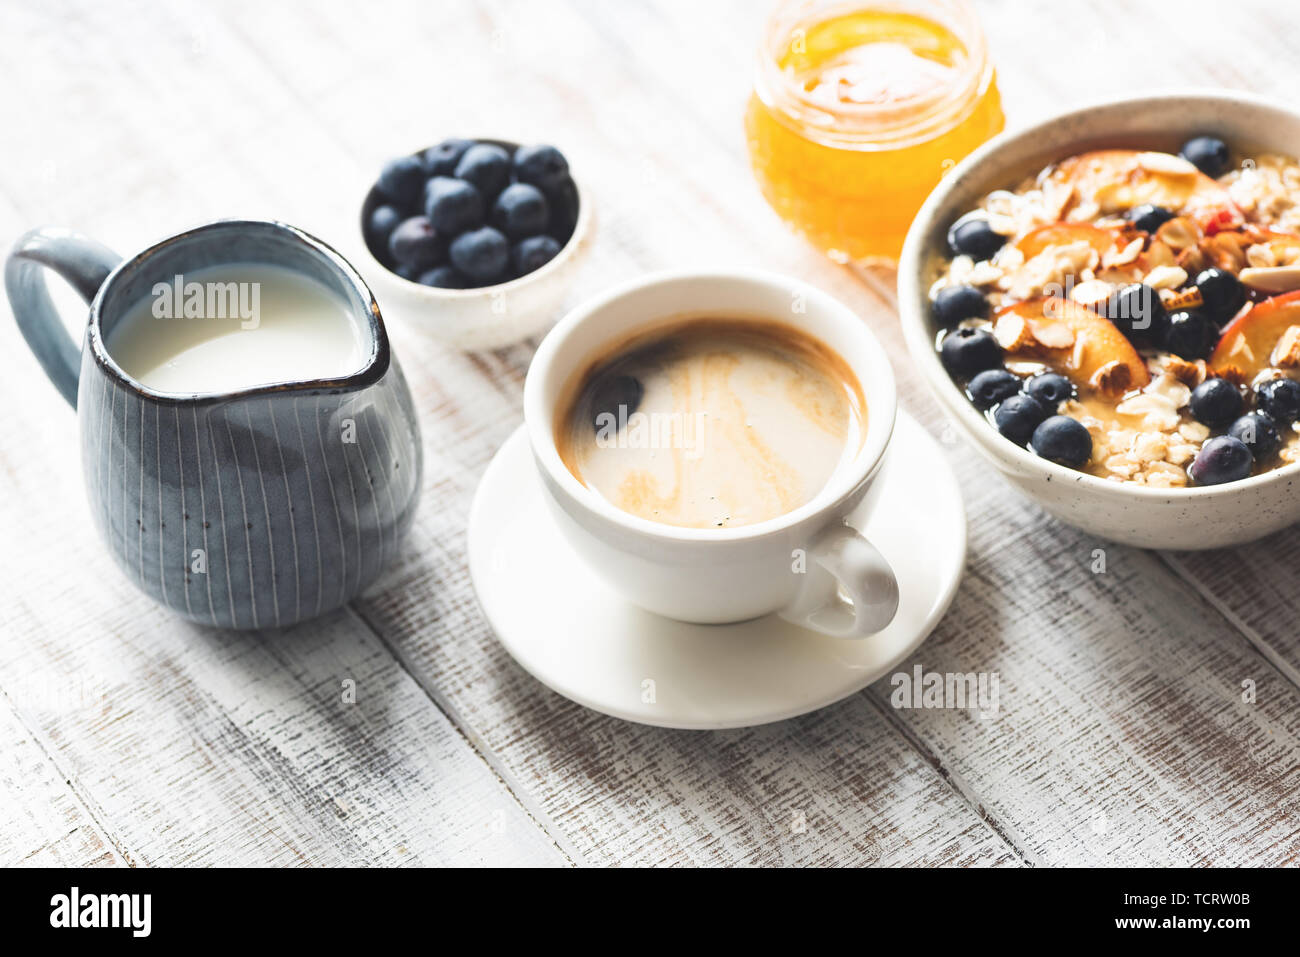 Cup Of Coffee Espresso And Breakfast Food Oatmeal Porridge With Fruits Berries Honey On Rustic White Wooden Table Background Stock Photo Alamy